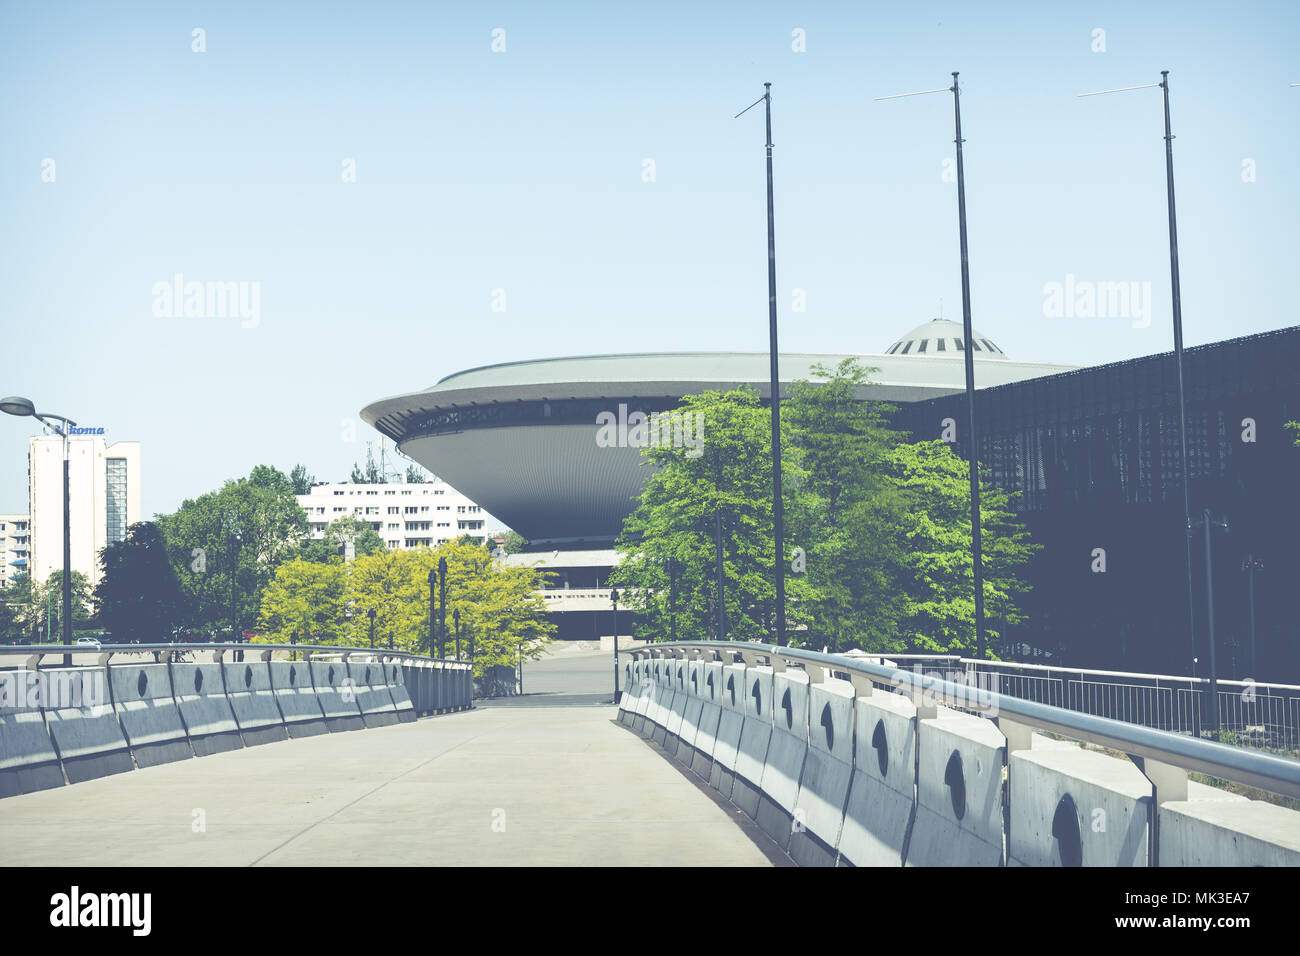 KATOWICE, POLAND - MAY 05, 2018: Entertainment hall called Spodek in city center of Katowice, Silesia. Stock Photo